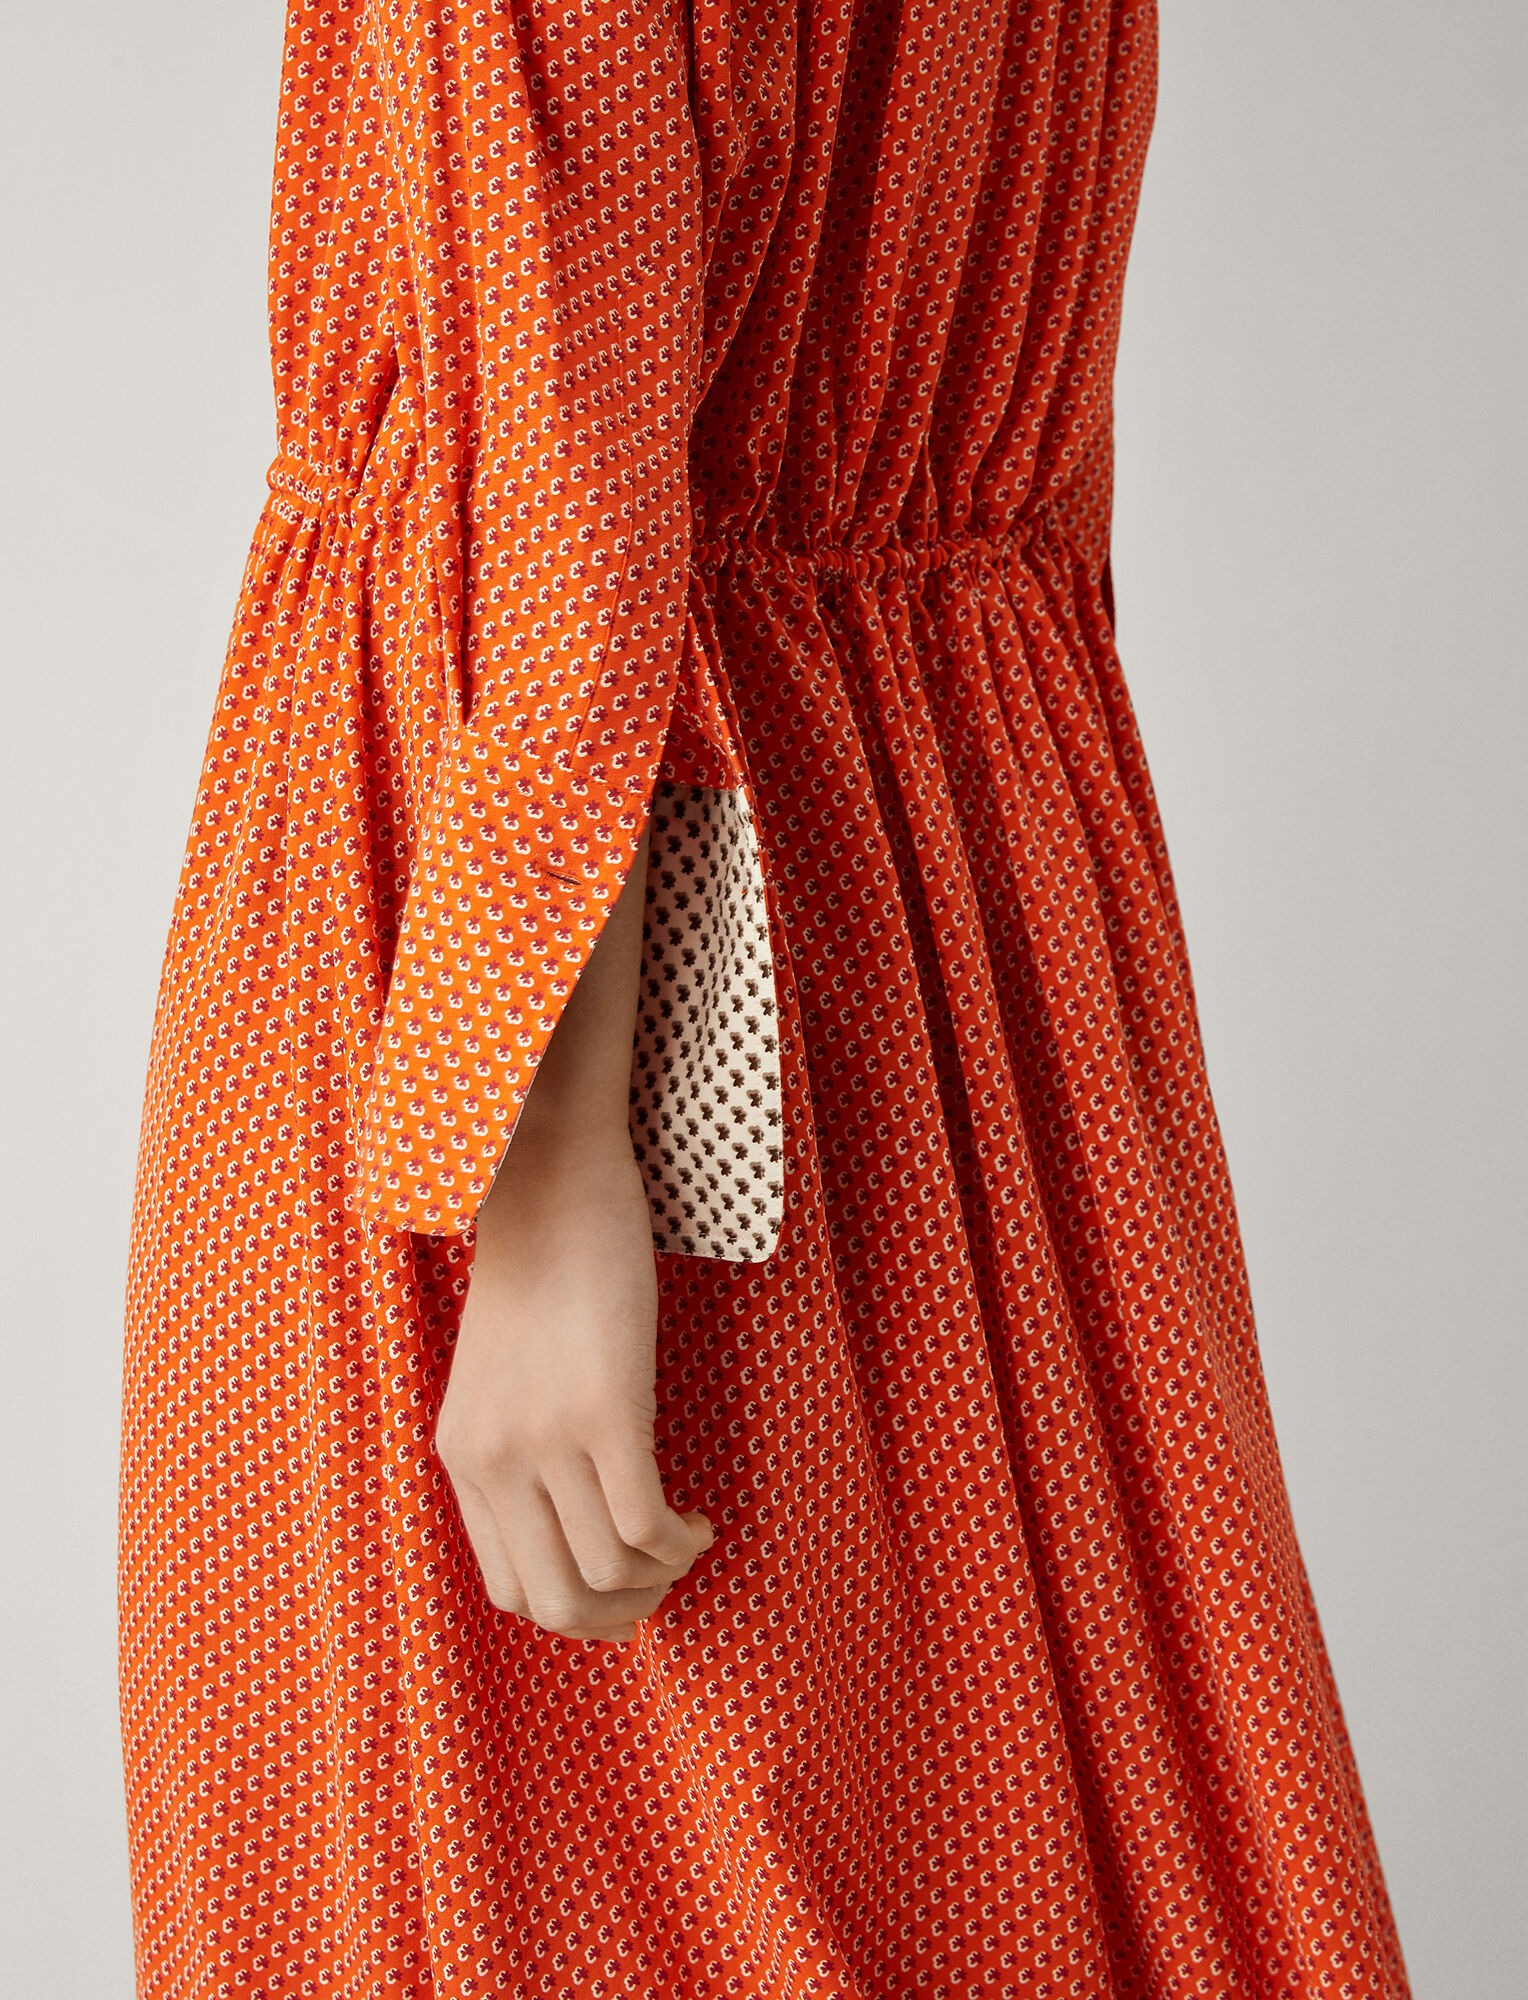 Joseph, Evie Micro Floral Dress, in CARROT